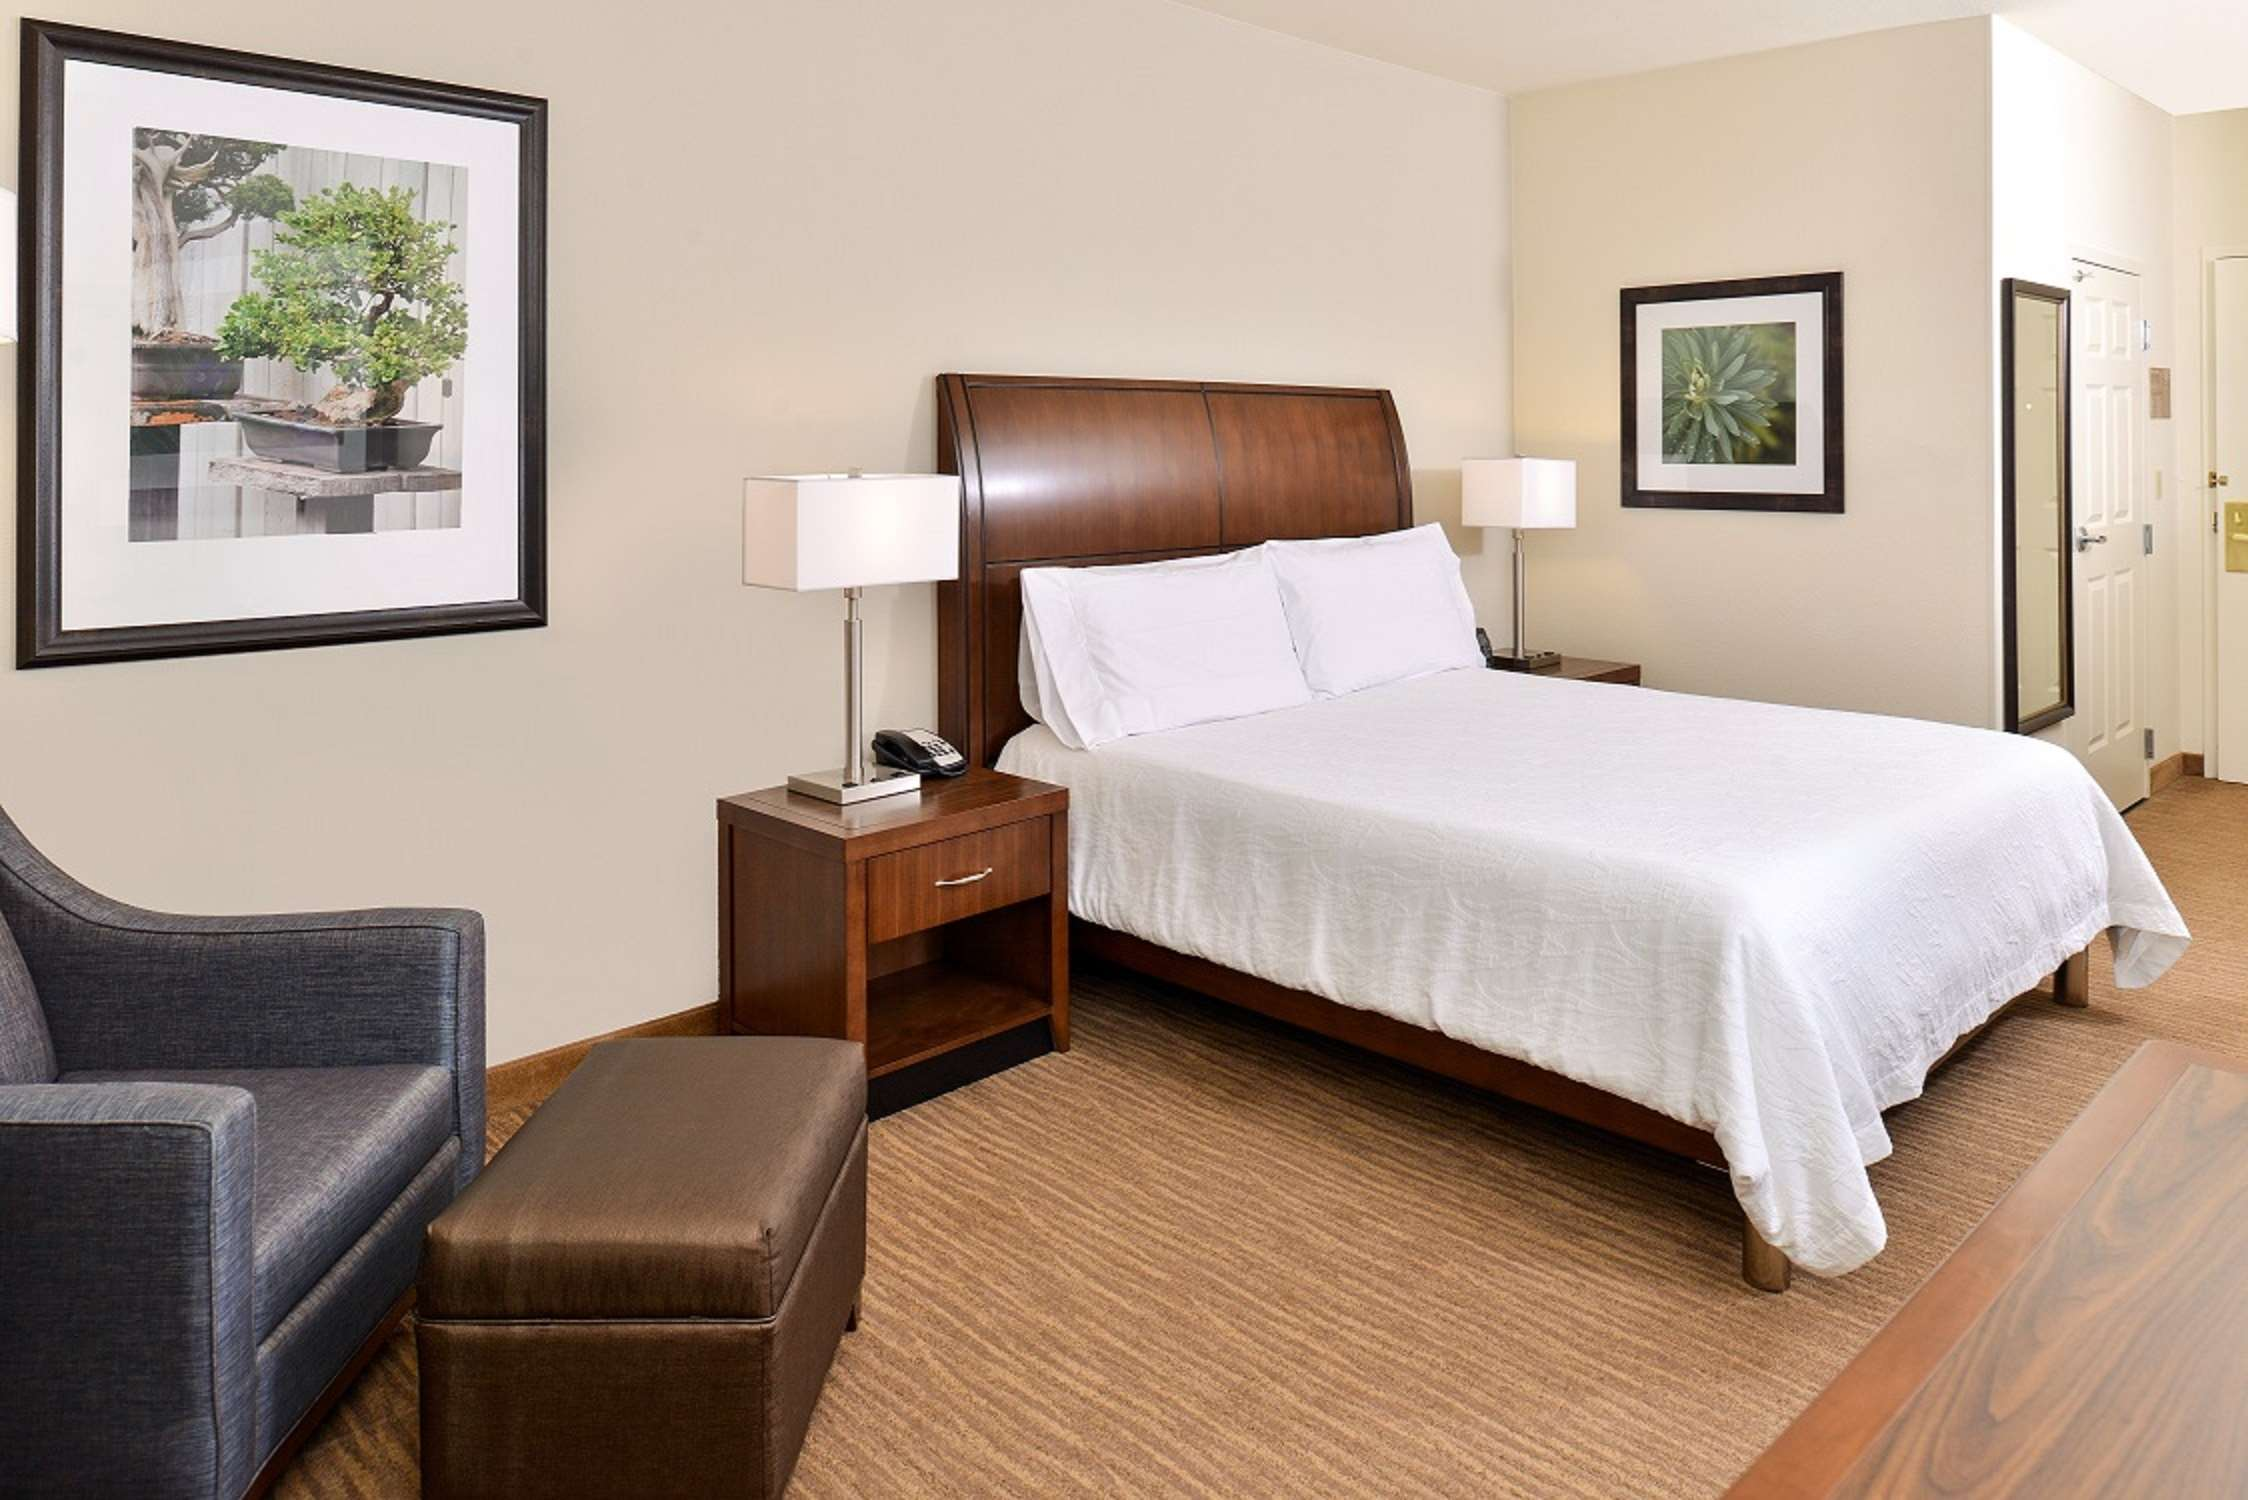 Hilton Garden Inn Dallas/Addison image 34